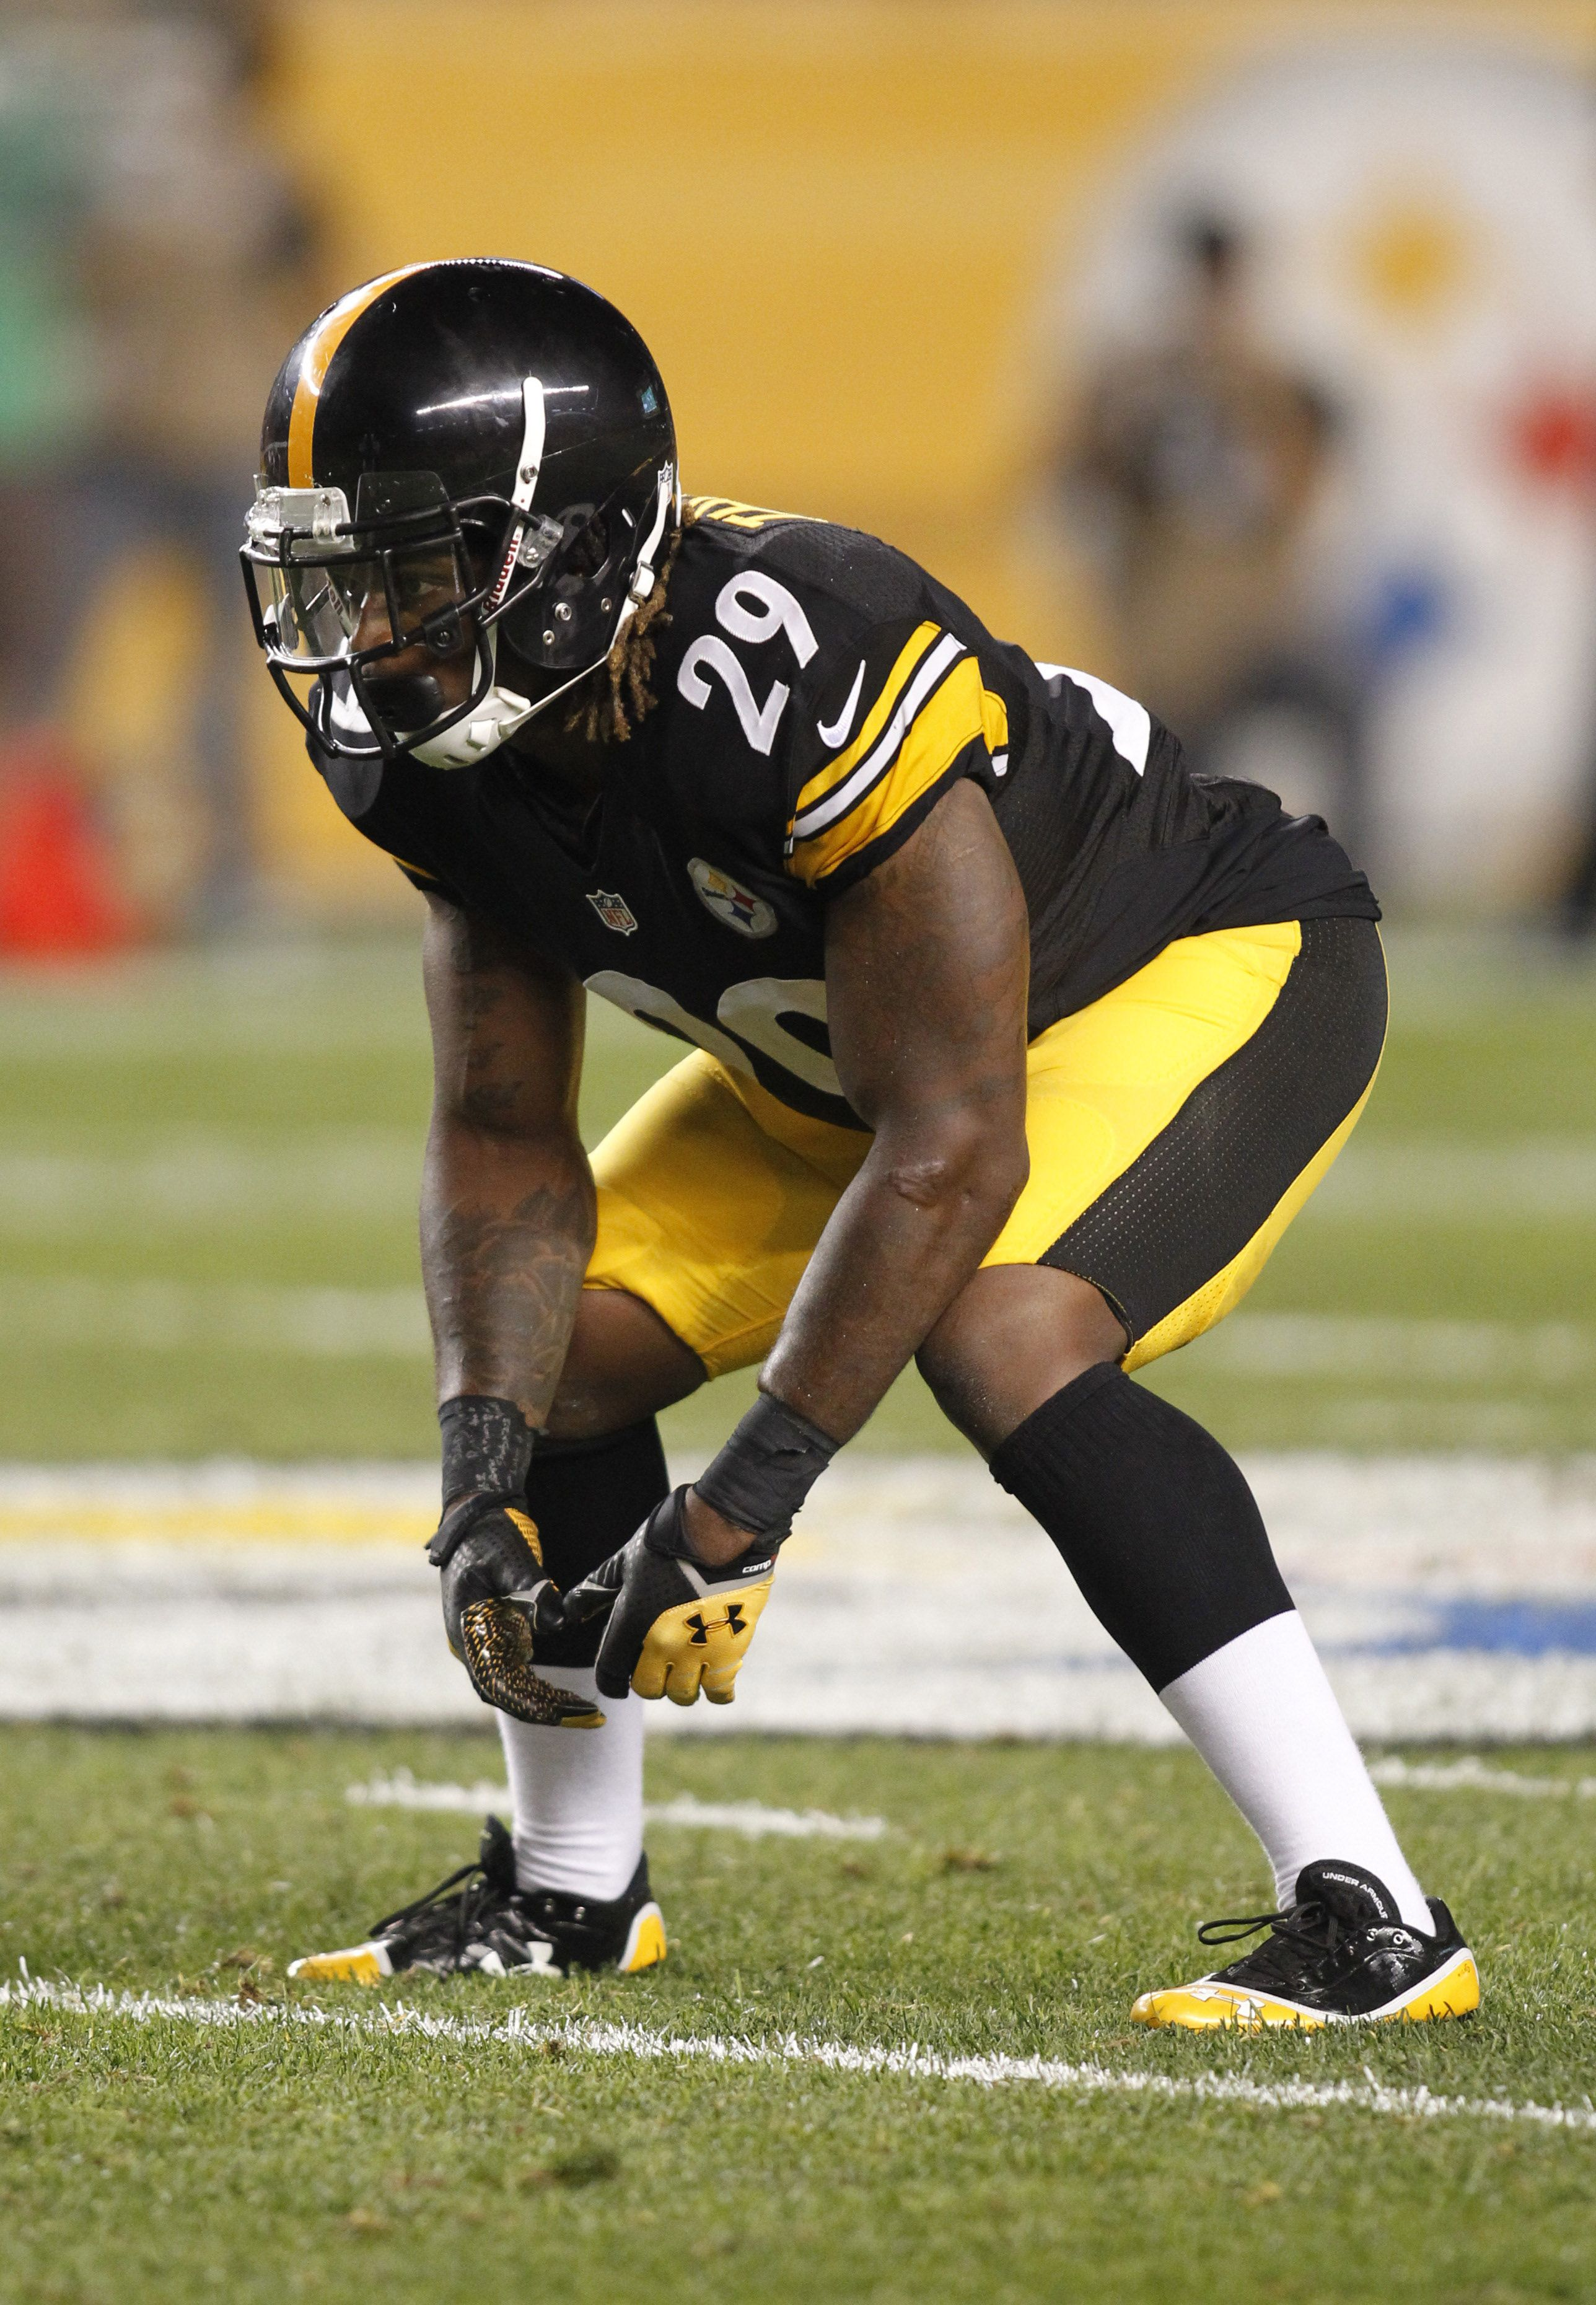 Pittsburgh Steelers strong safety Shamarko Thomas on the